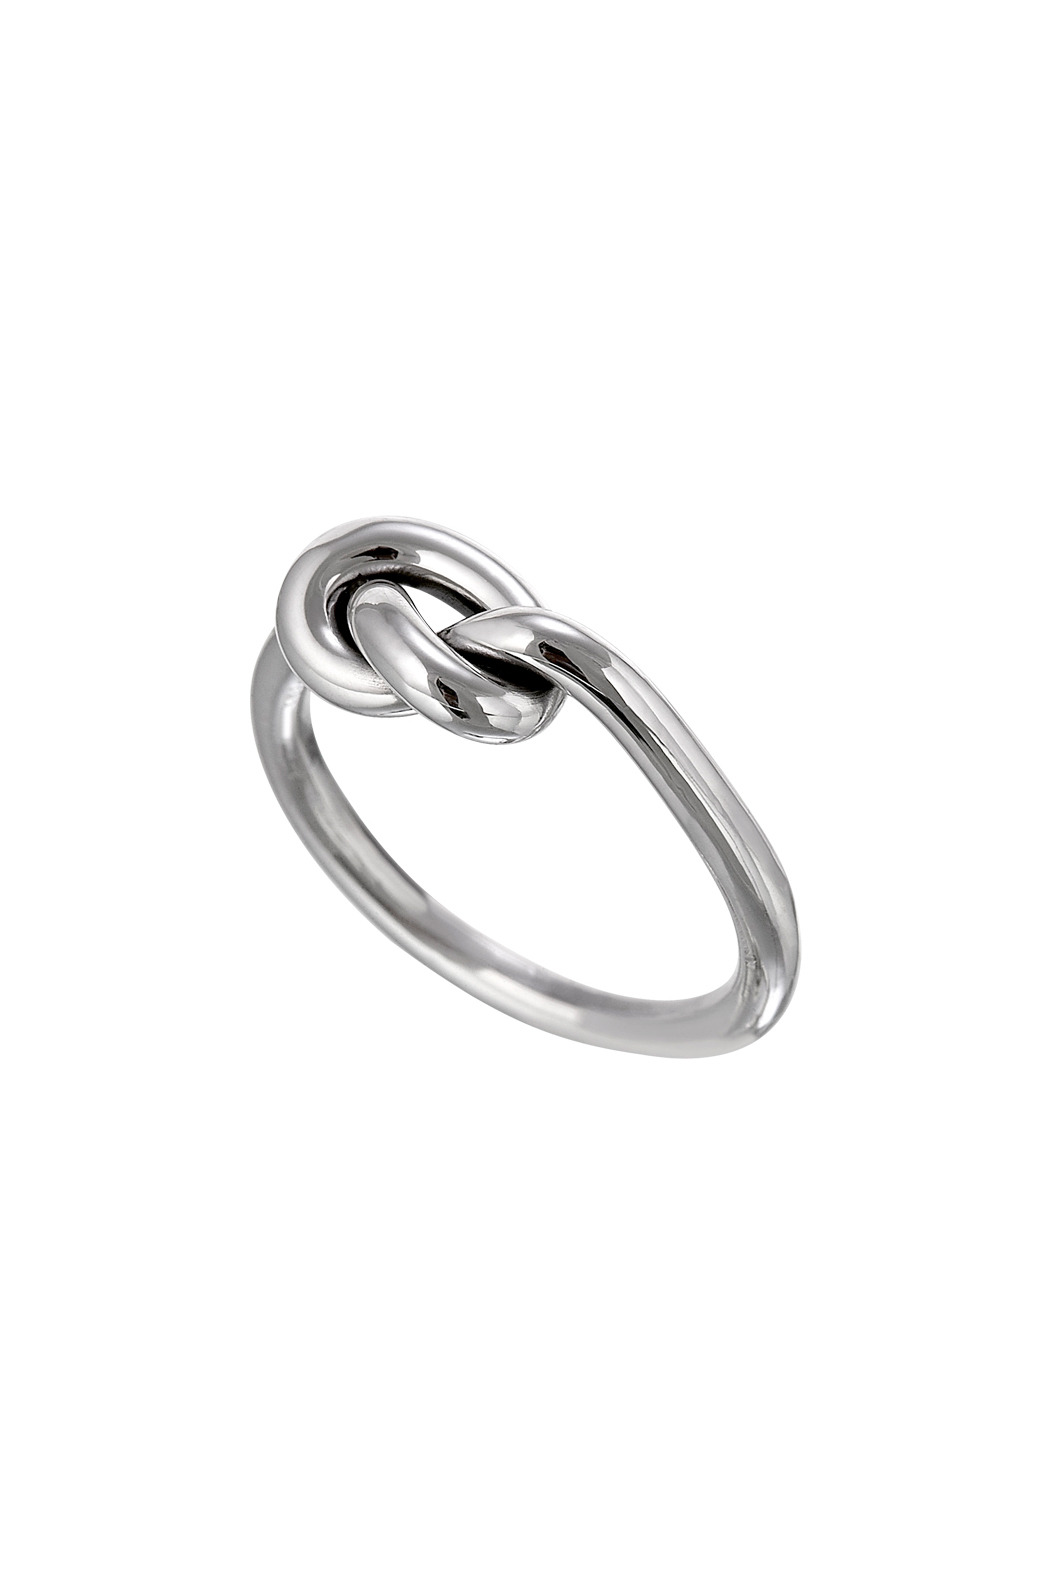 salvador jouhayerk silver single knot ring from cambridge